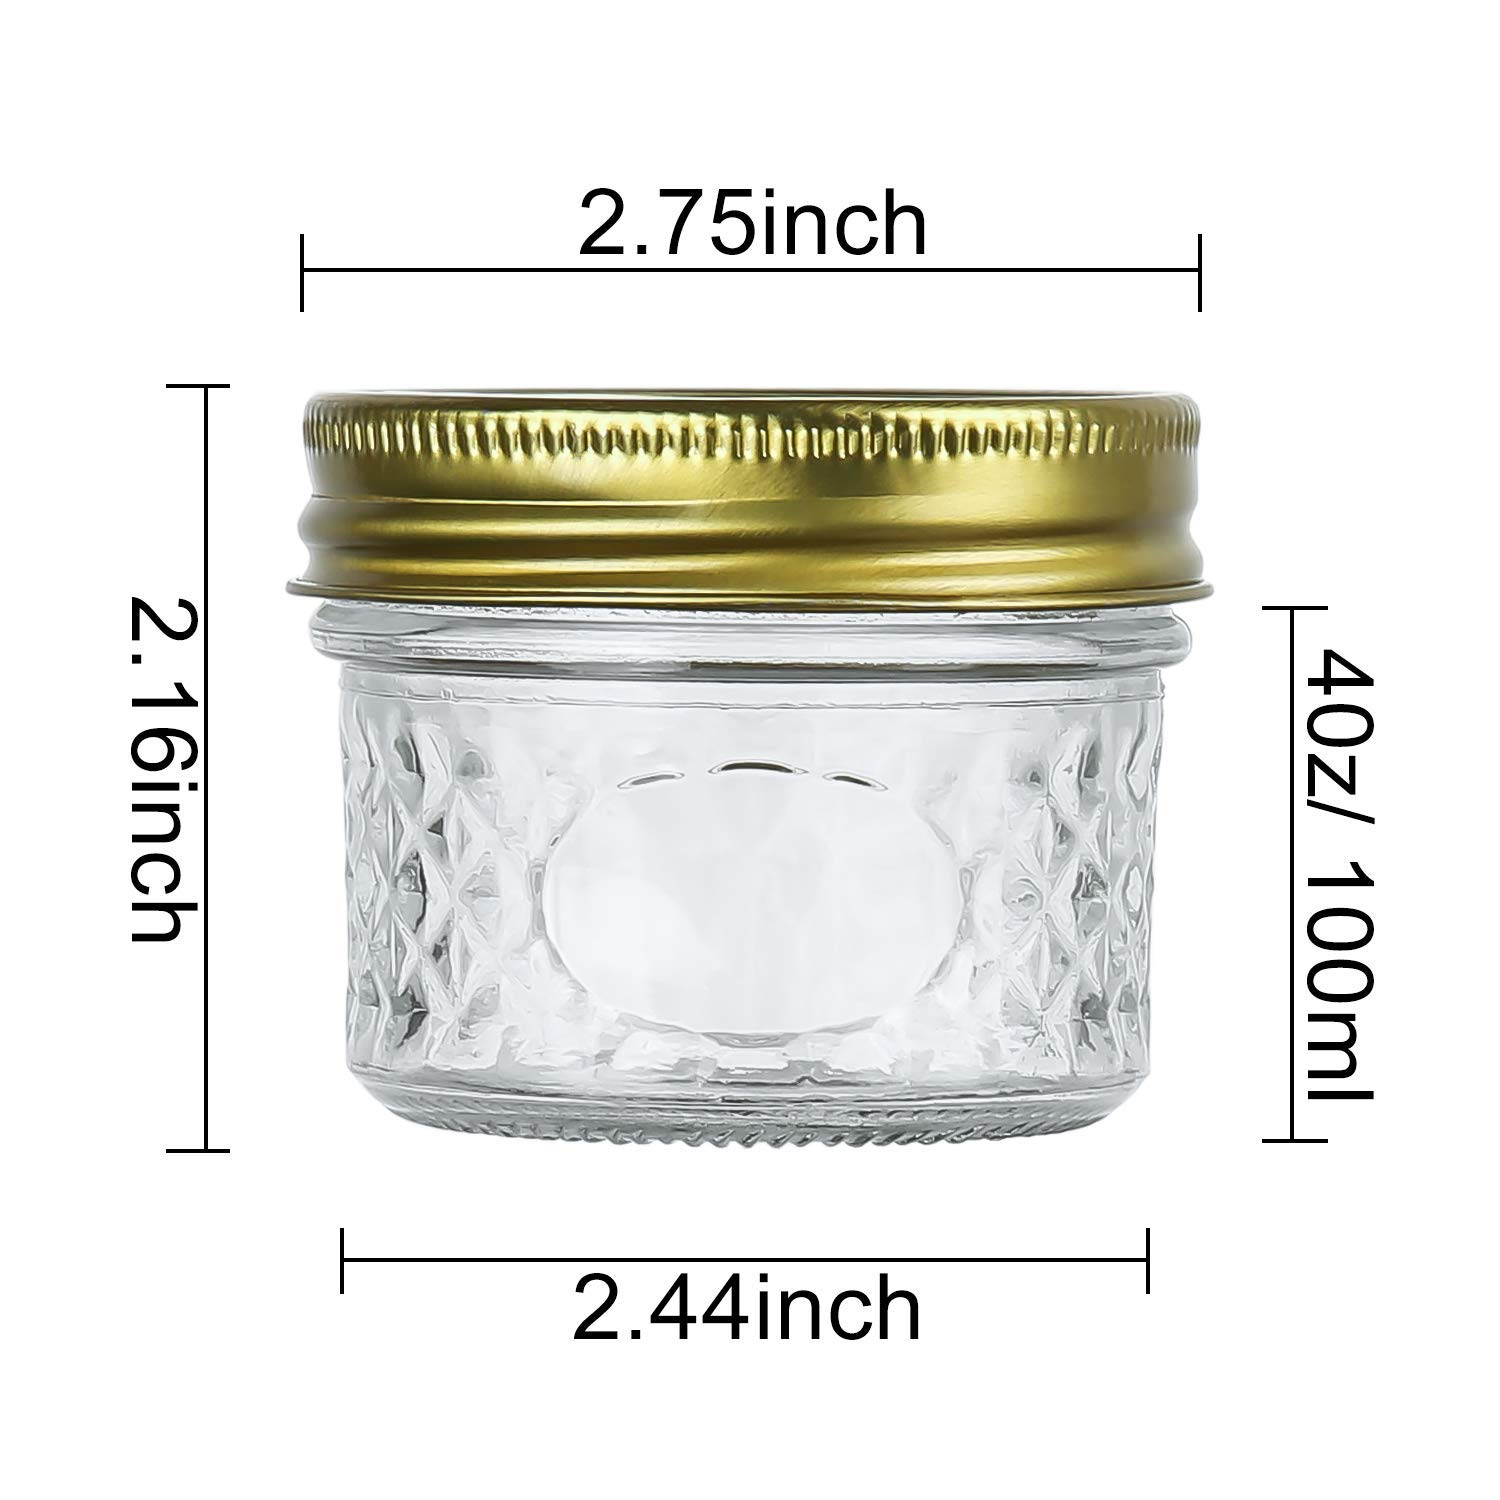 Encheng 4 oz Glass Jars With Lids And Bands,Small Canning Jars For Caviar,Herb,Jelly,Jams,Mini Wide Mouth Mason Jars For Kitchen Storage Preserving Food And Party Favors 40 Pack ... by Encheng (Image #2)